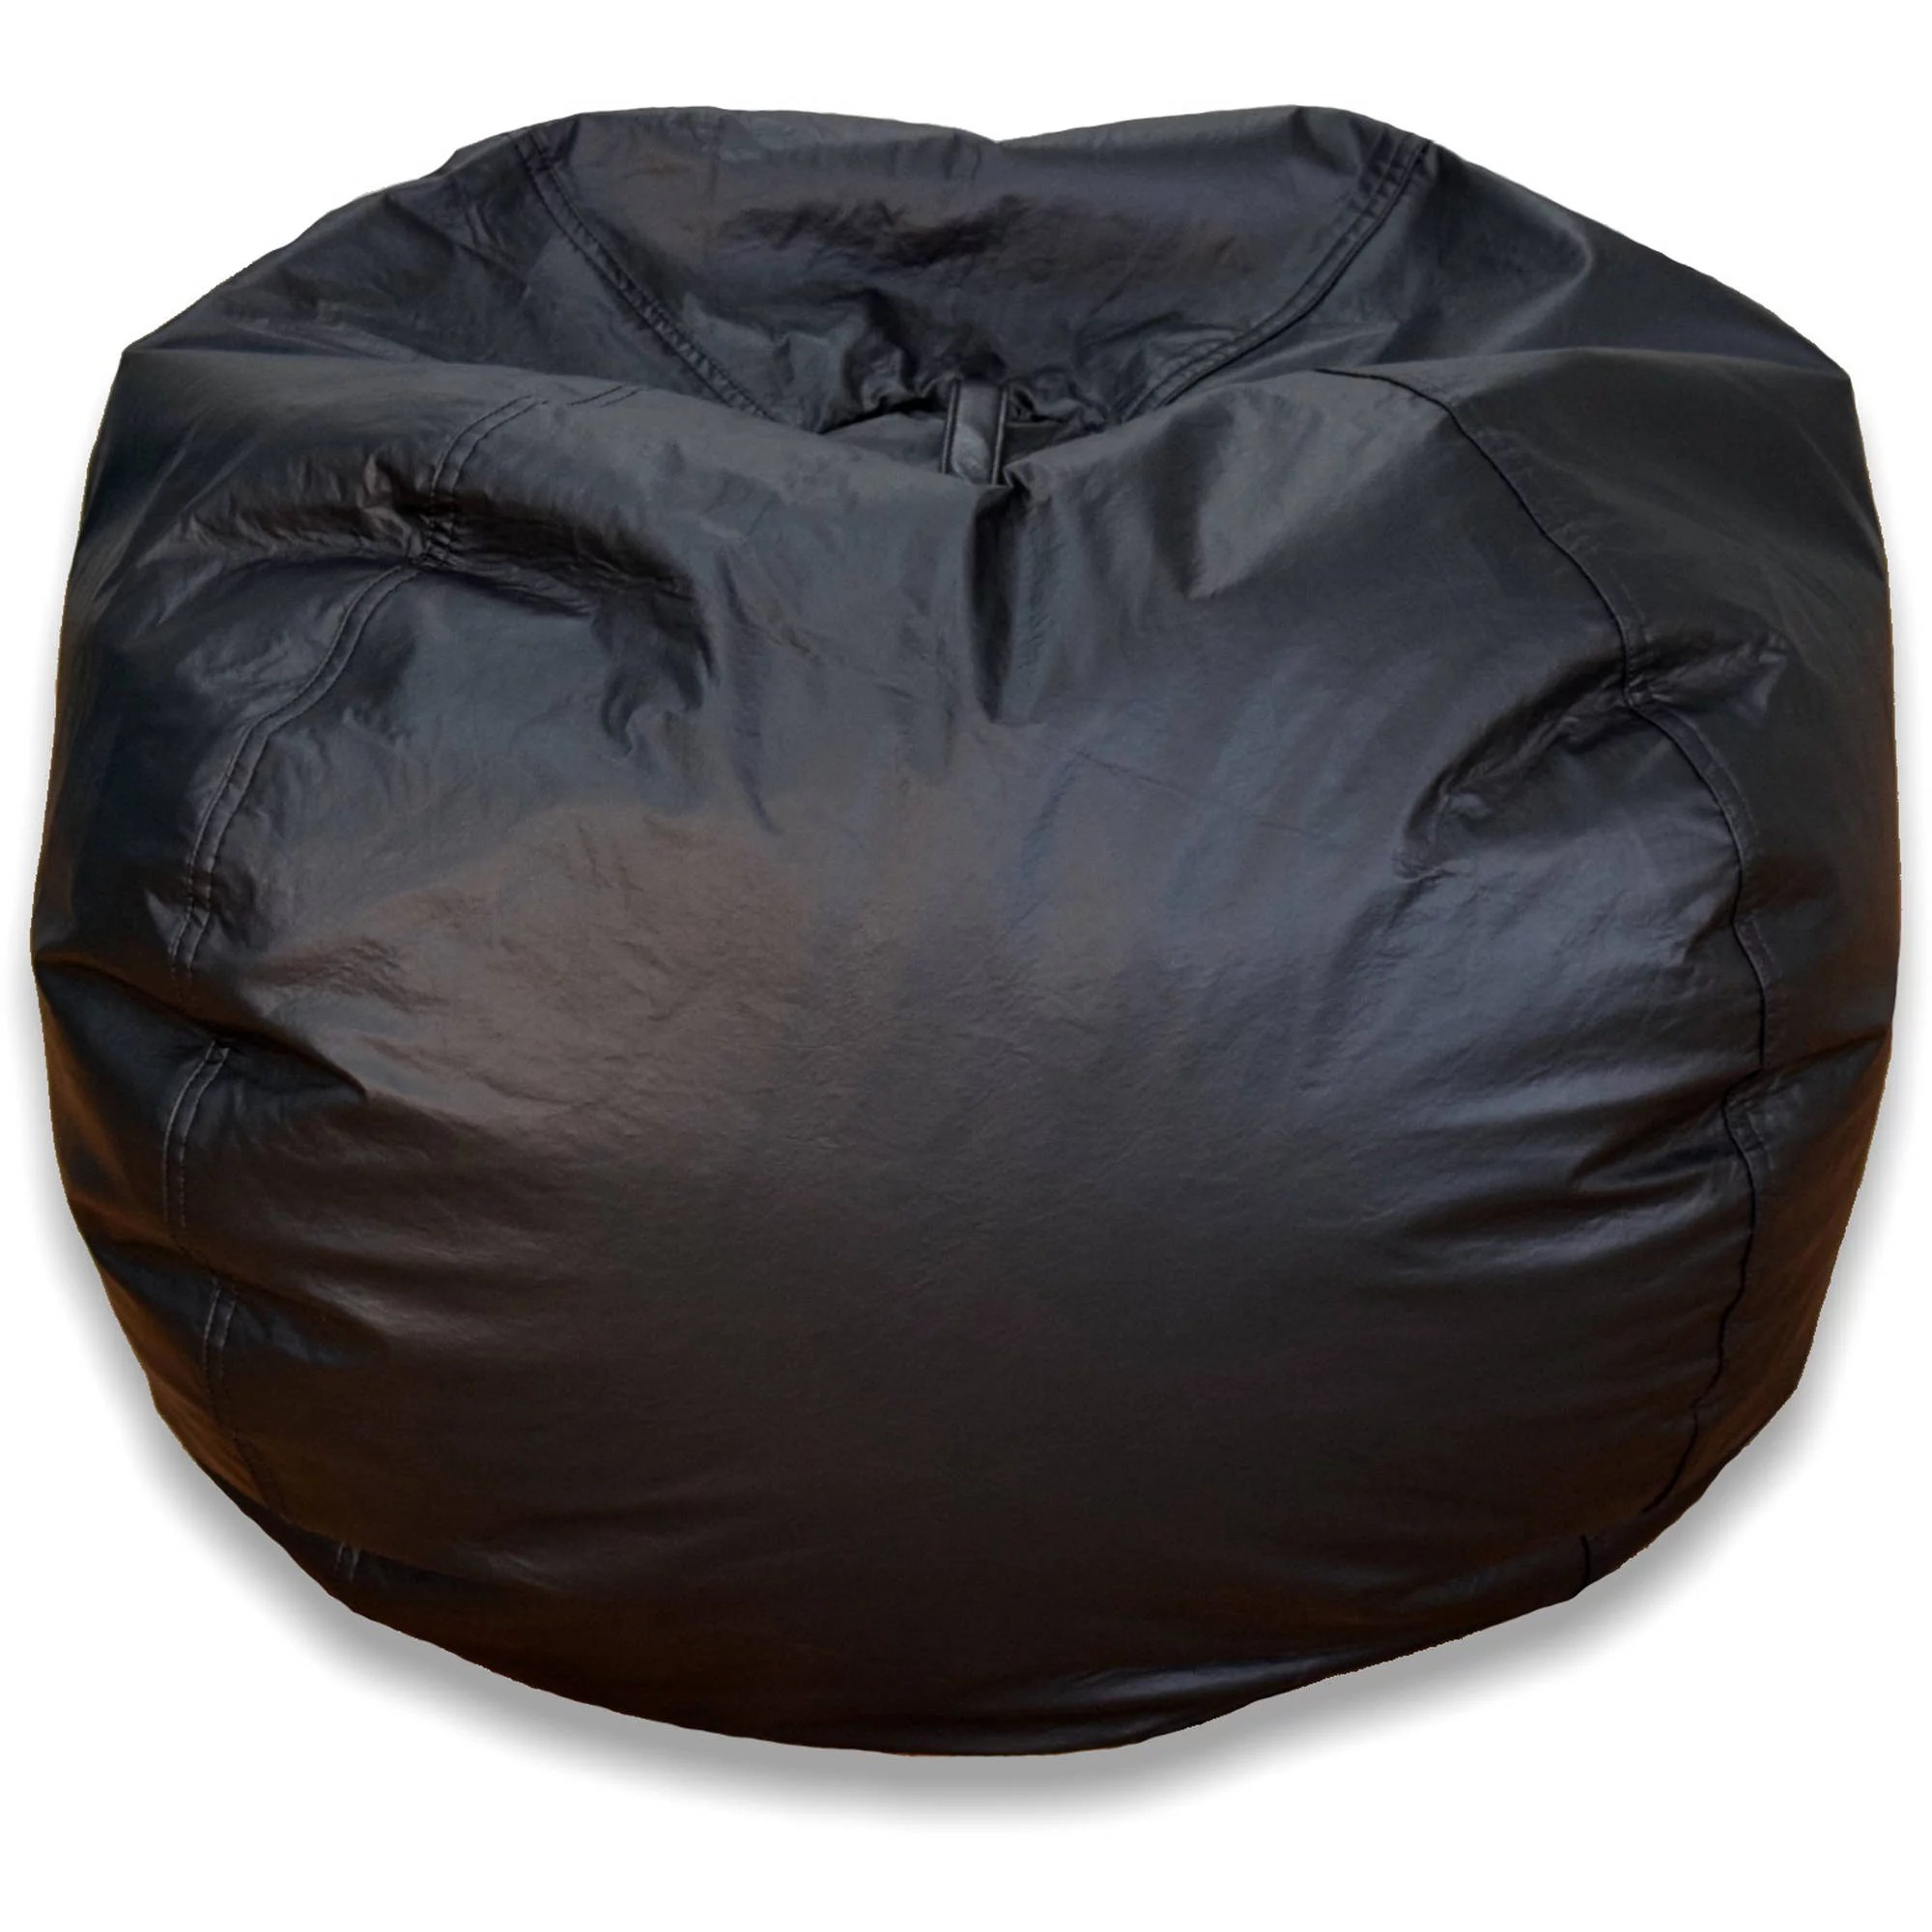 Basketball Bean Bag Chair Jumbo Bean Bag Chair Multiple Colors